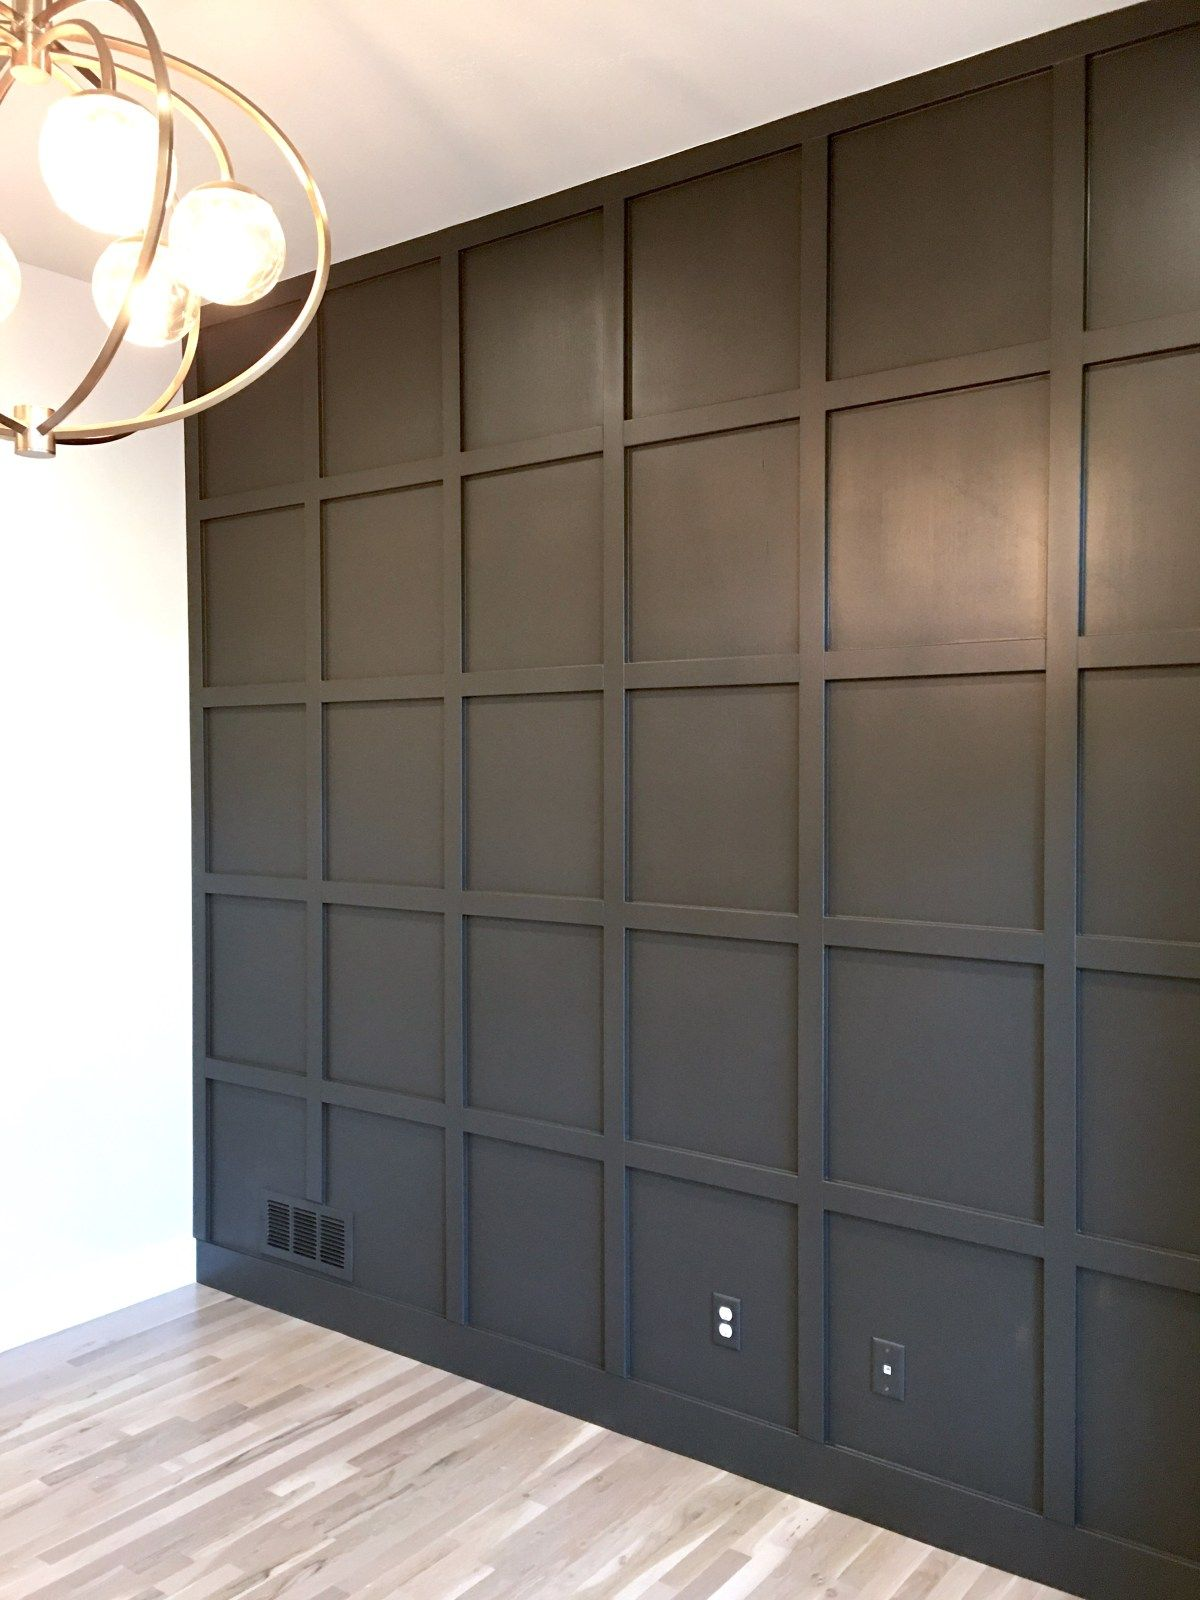 Tutorial For Creating A Perfect Grid Wall Wall Paneling Diy Wall Paneling Wall Trim